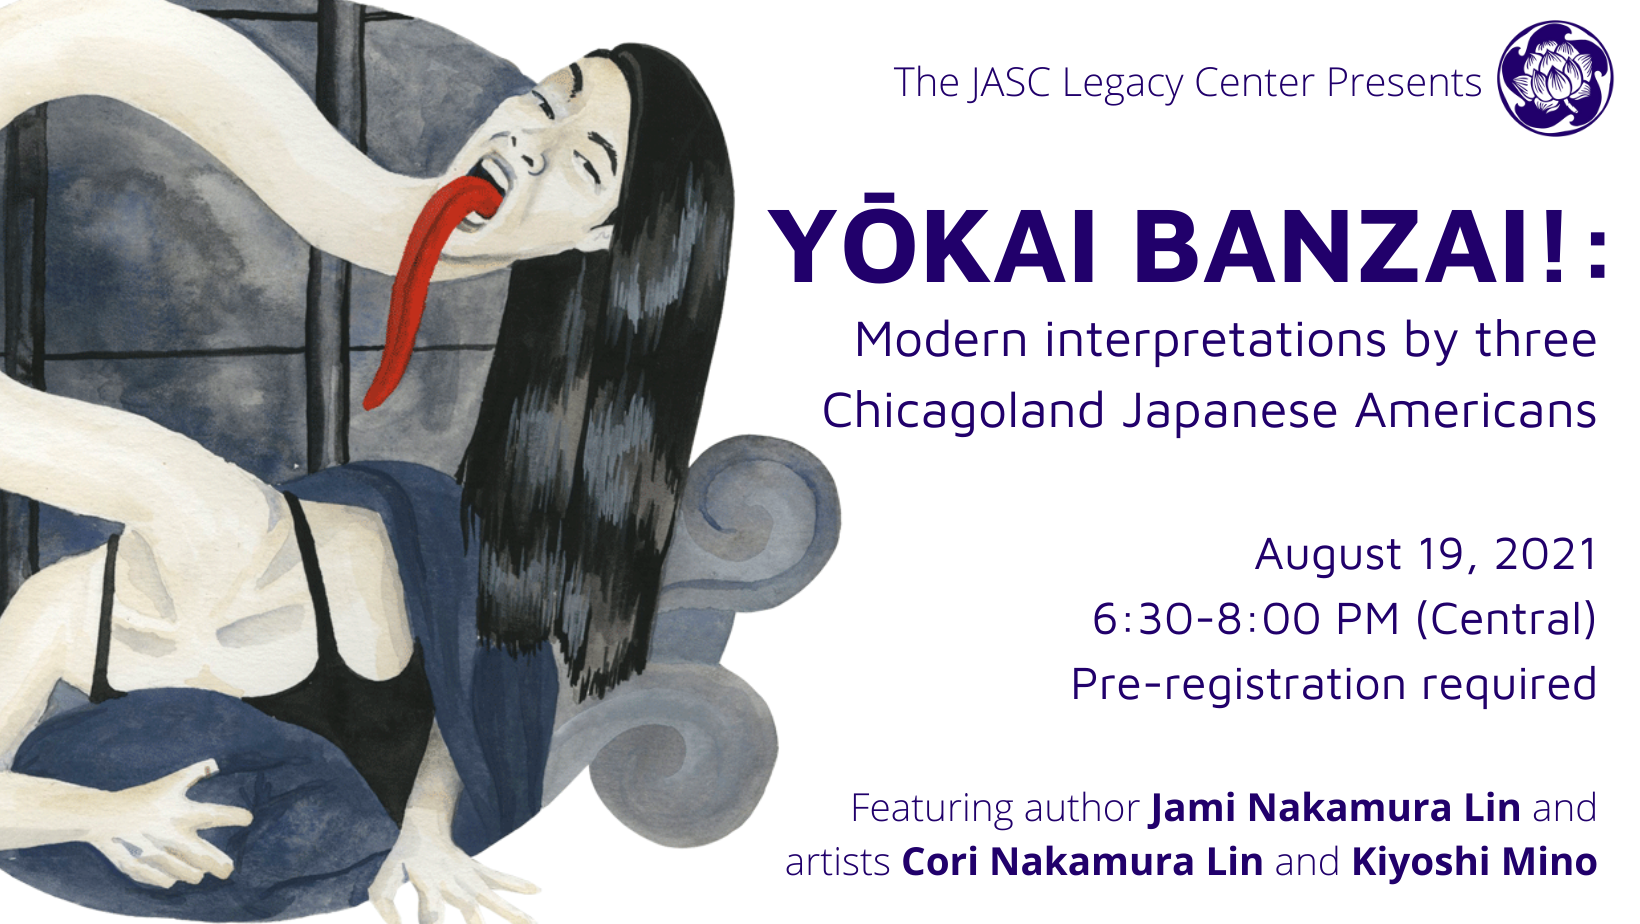 """Artistic representation of a woman with long black hair and long red tongue with an elongated neck, text reads """"The JASC Legacy Center Presents, Yōkai Banzai!: Modern interpretations by three Chicagoland Japanese Americans, August 19, 2021 6:30-8:00 PM (Central) Pre-registration required, Featuring author Jami Nakamura Lin and artists Cori Nakamura Lin and Kiyoshi Mino"""""""